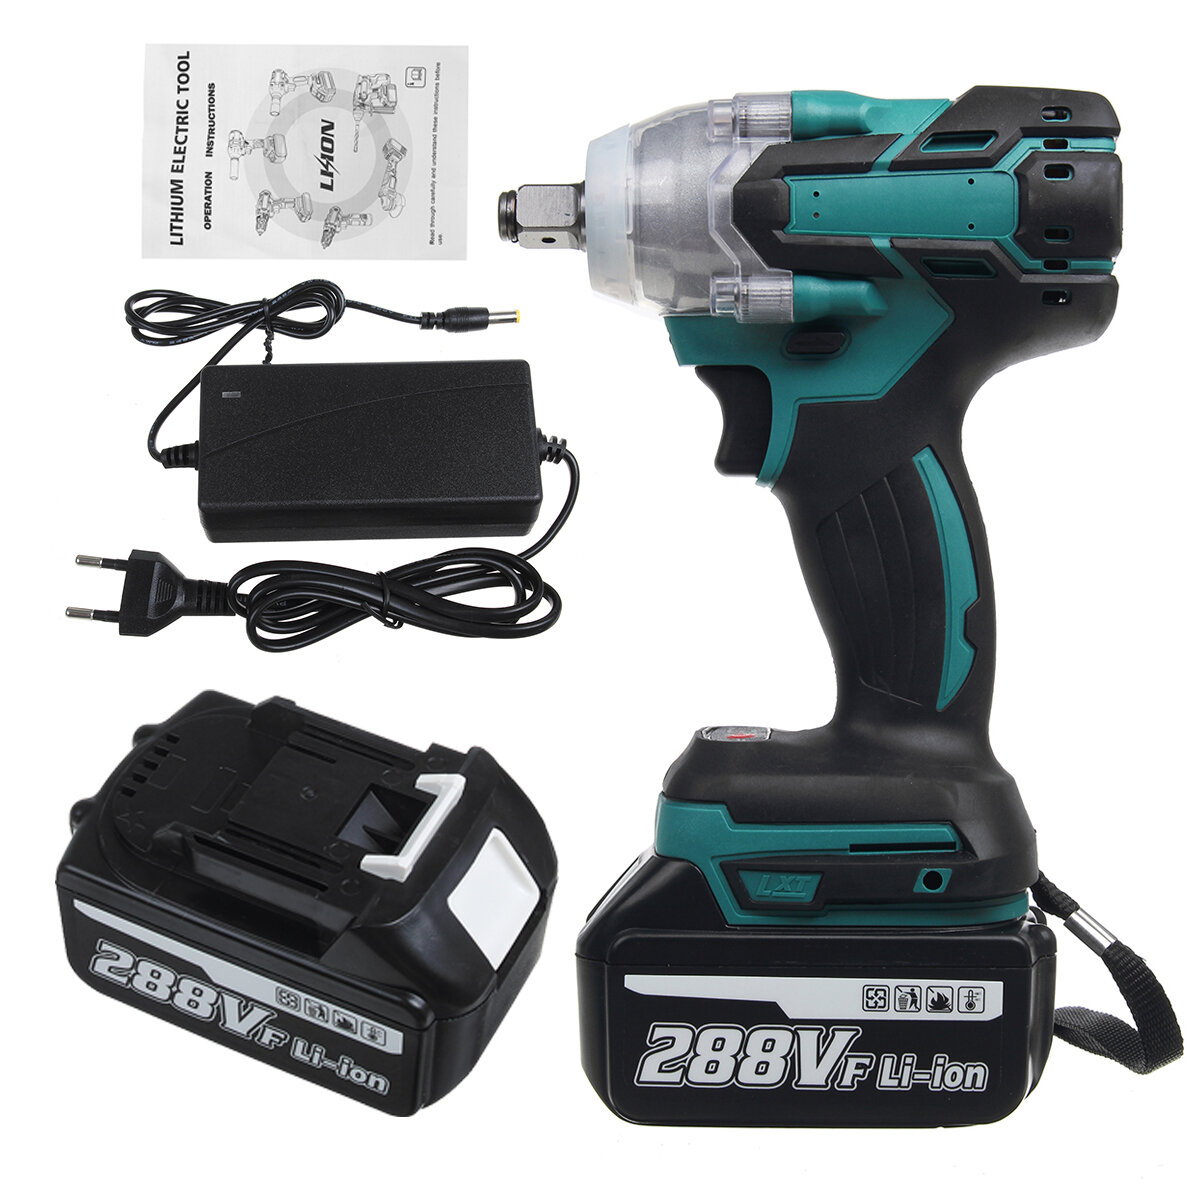 VIOLEWORKS 288VF 1/2'' Electric Cordless Brushless Impact Wrench With 1/2 Battery